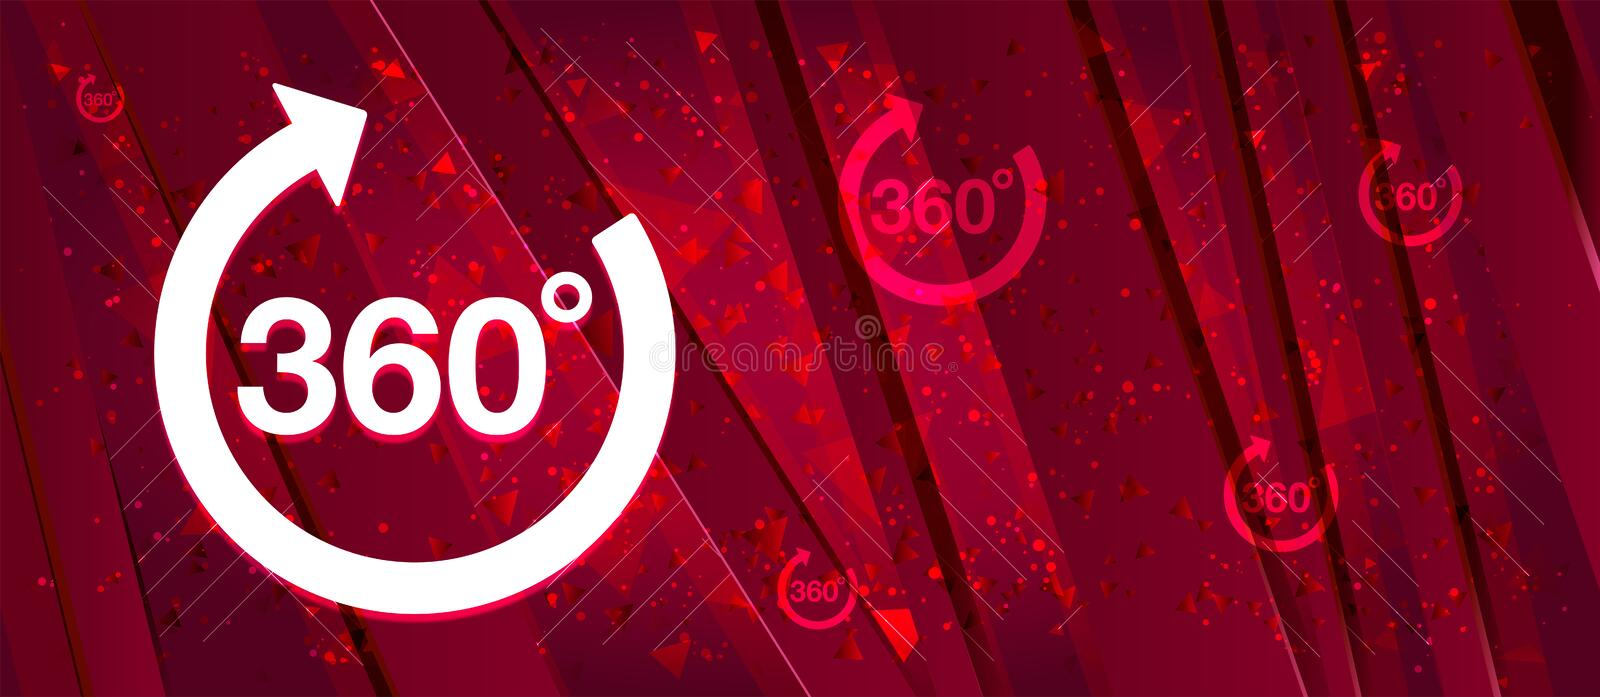 360 degrees rotate arrow icon Abstract design bright red banner background. 360 degrees rotate arrow icon isolated on Abstract design bright red banner stock illustration